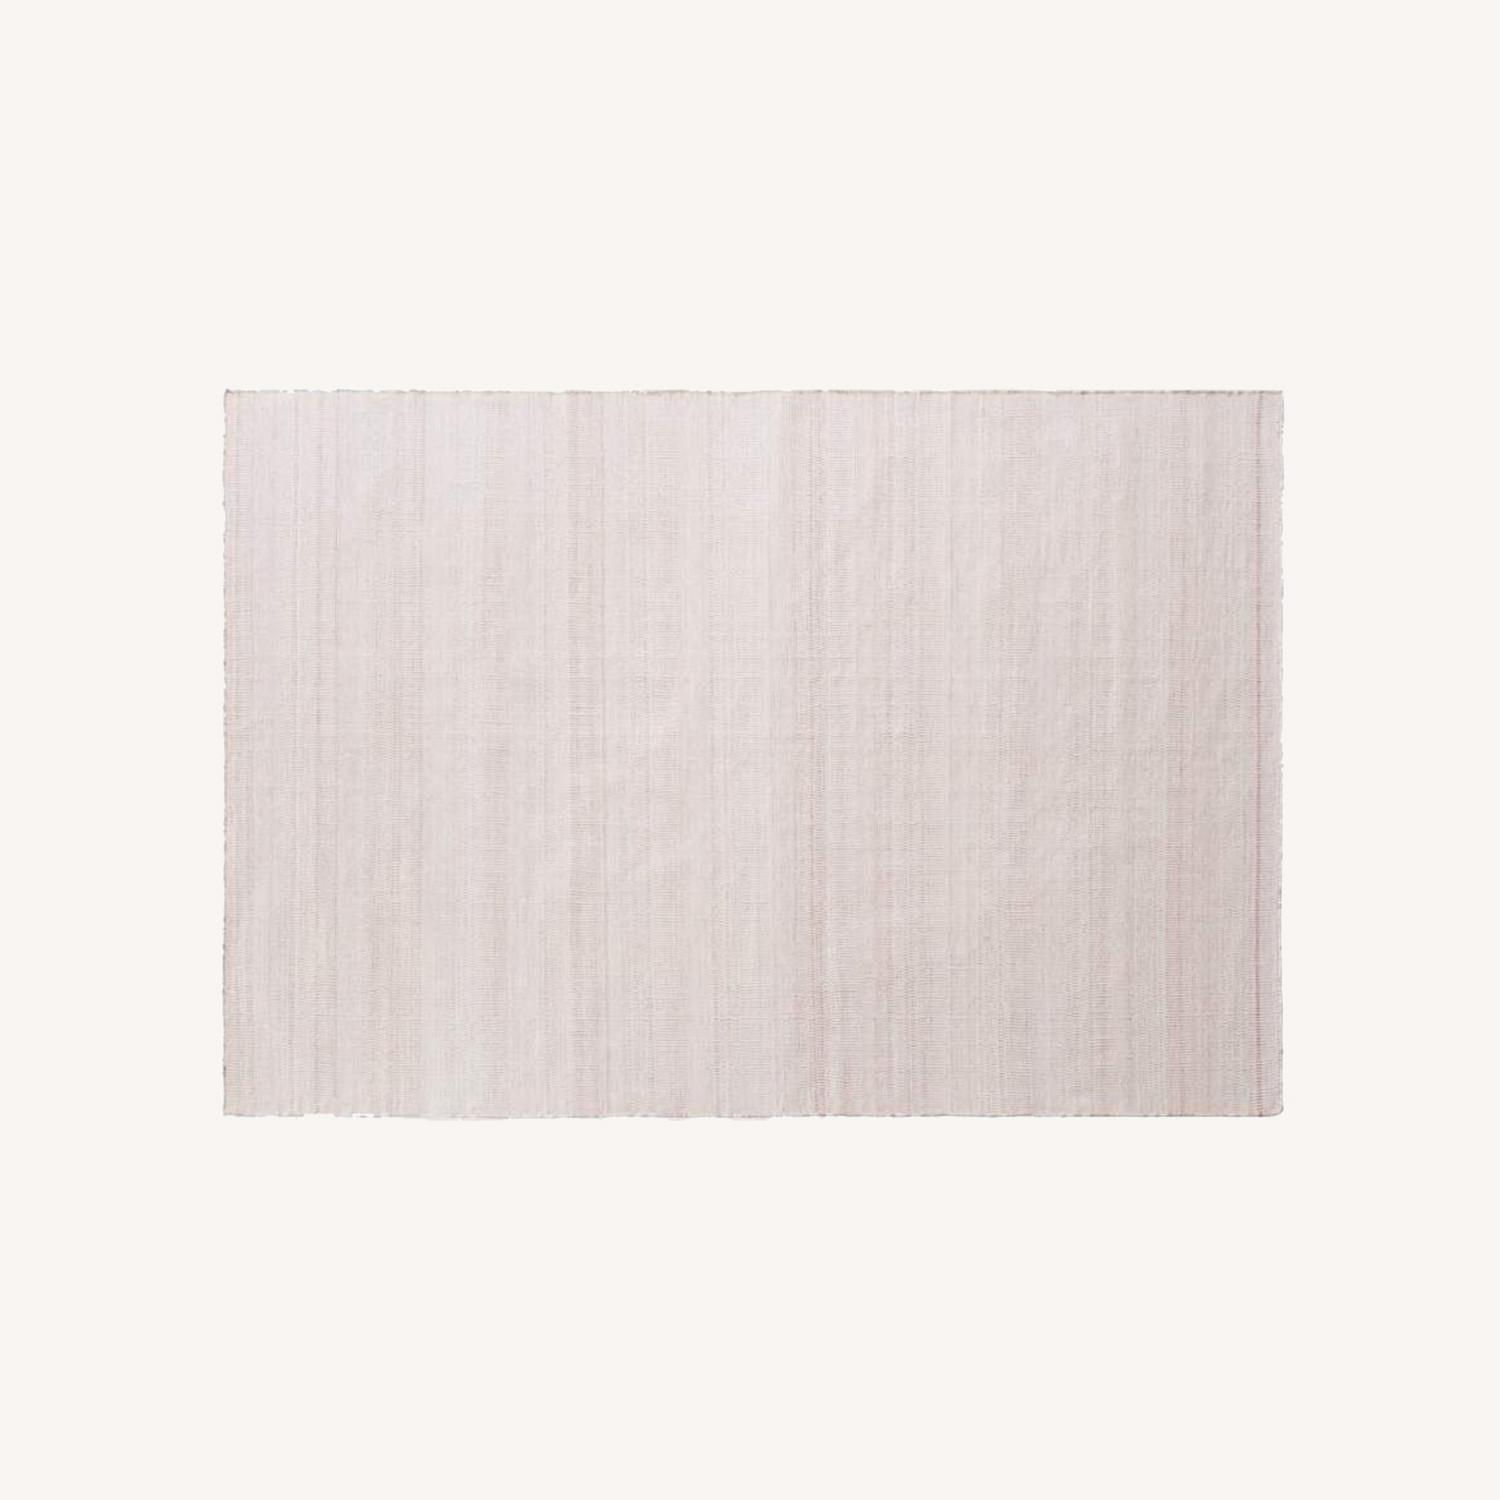 The Citizenry Anik Indoor/Outdoor Recycled Rug - image-0